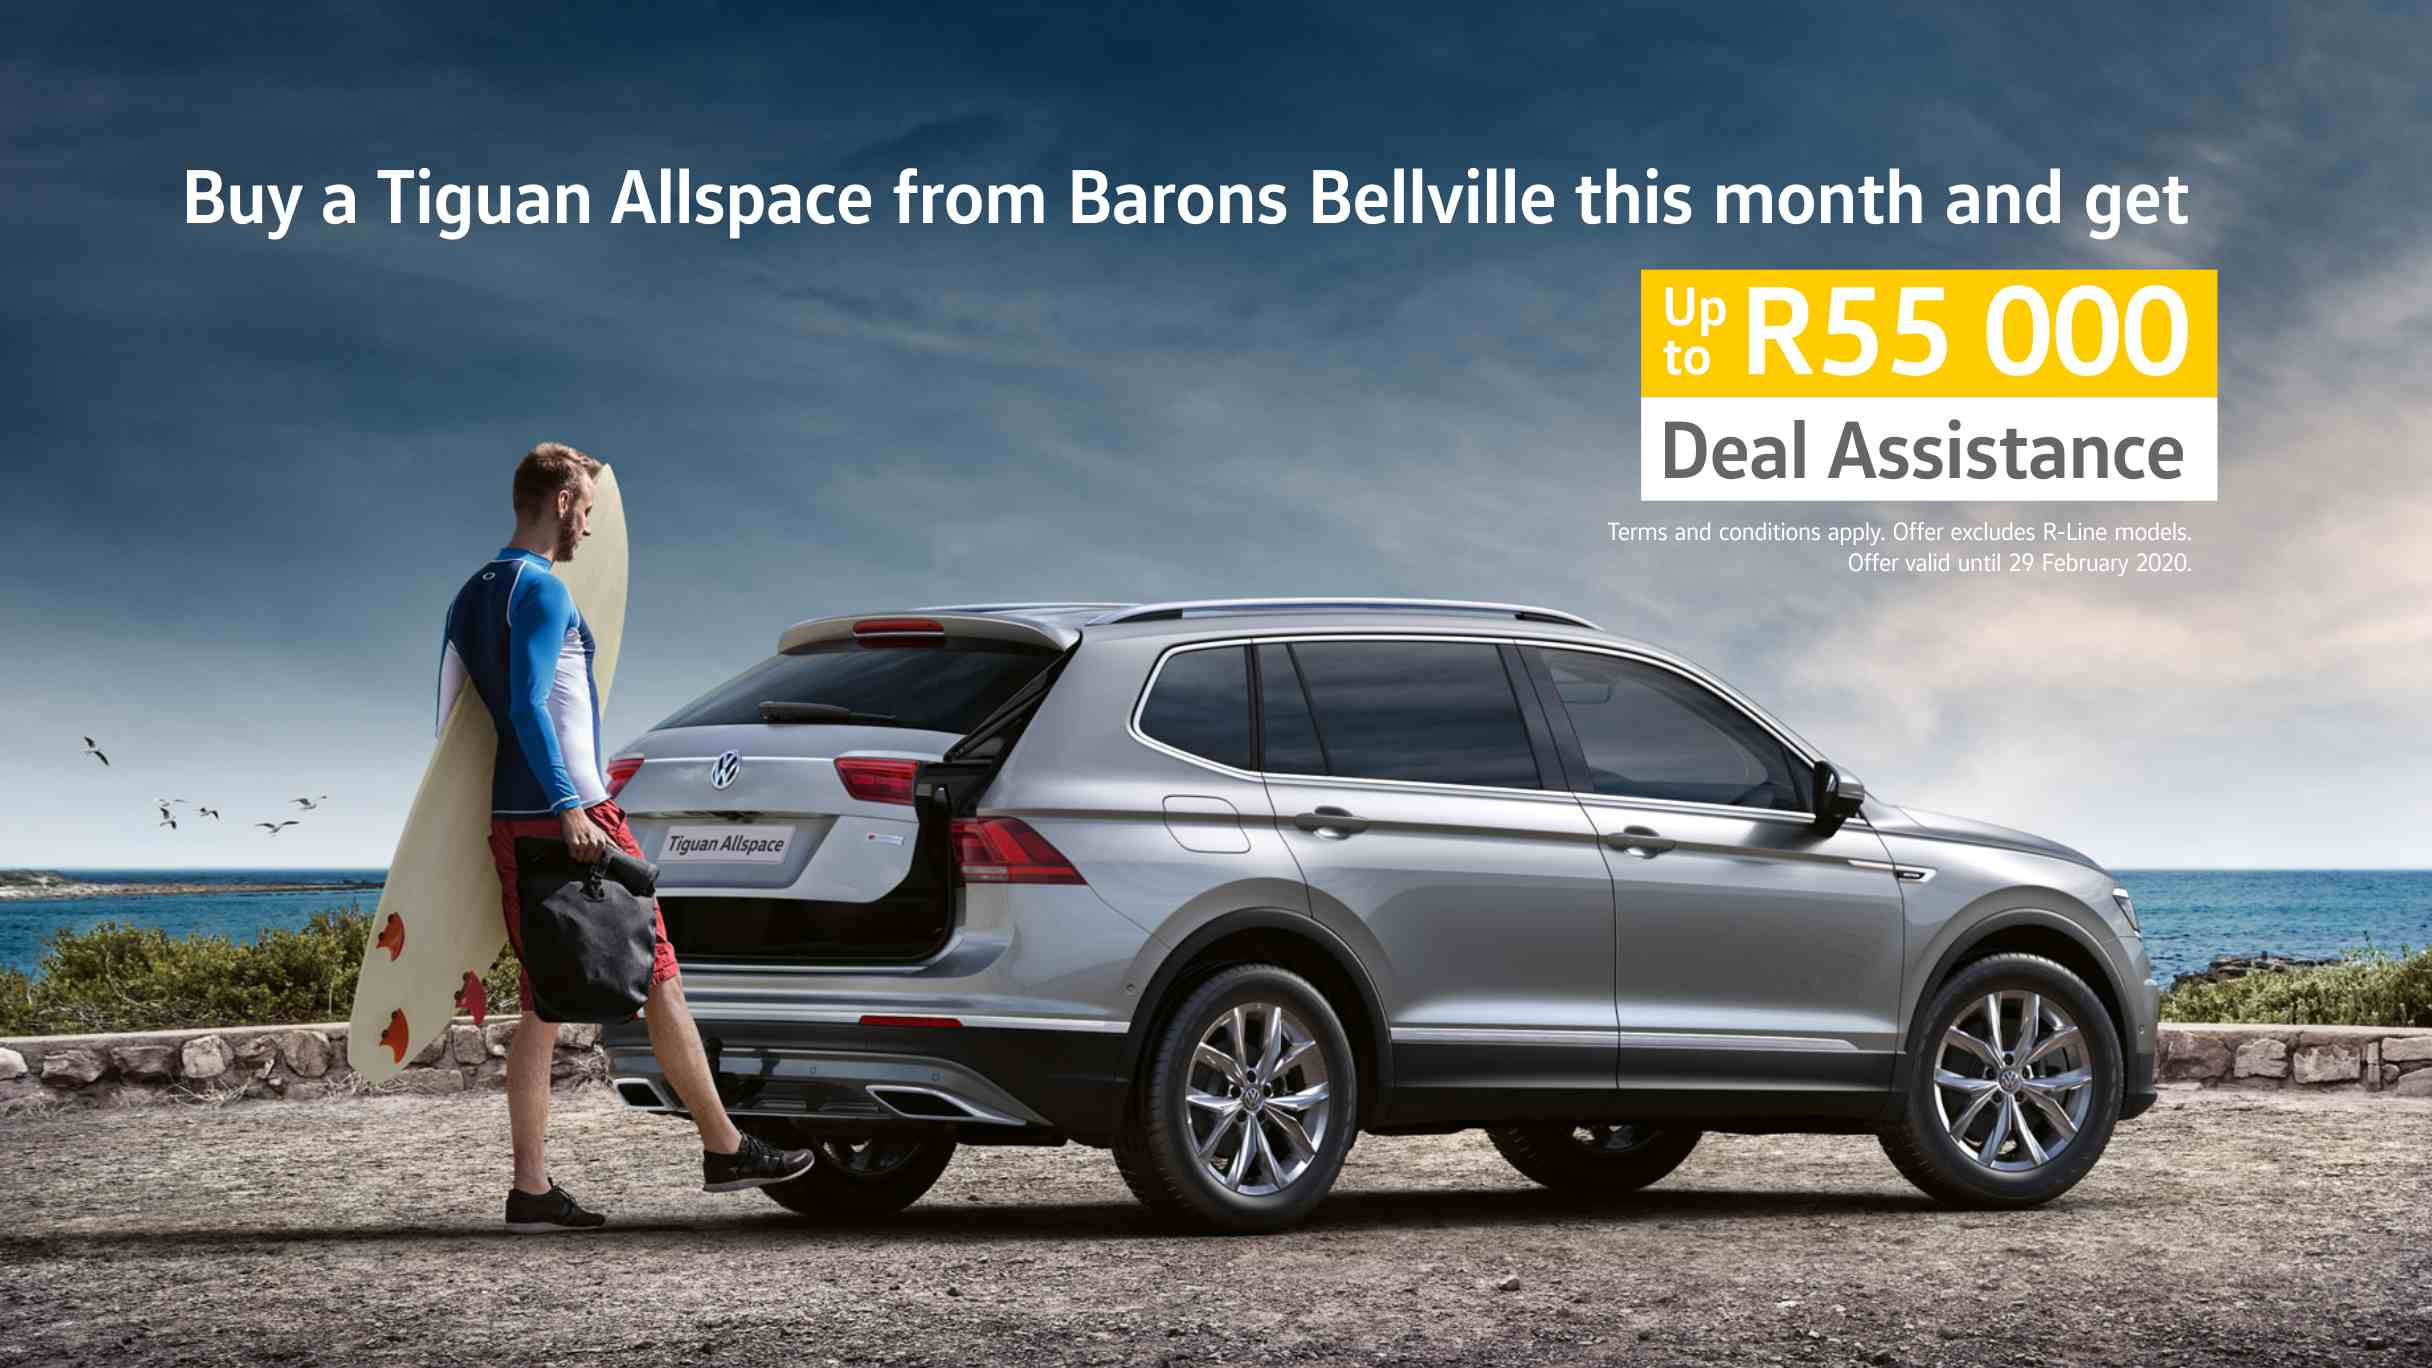 VW Tiguan Allspace special new year offer